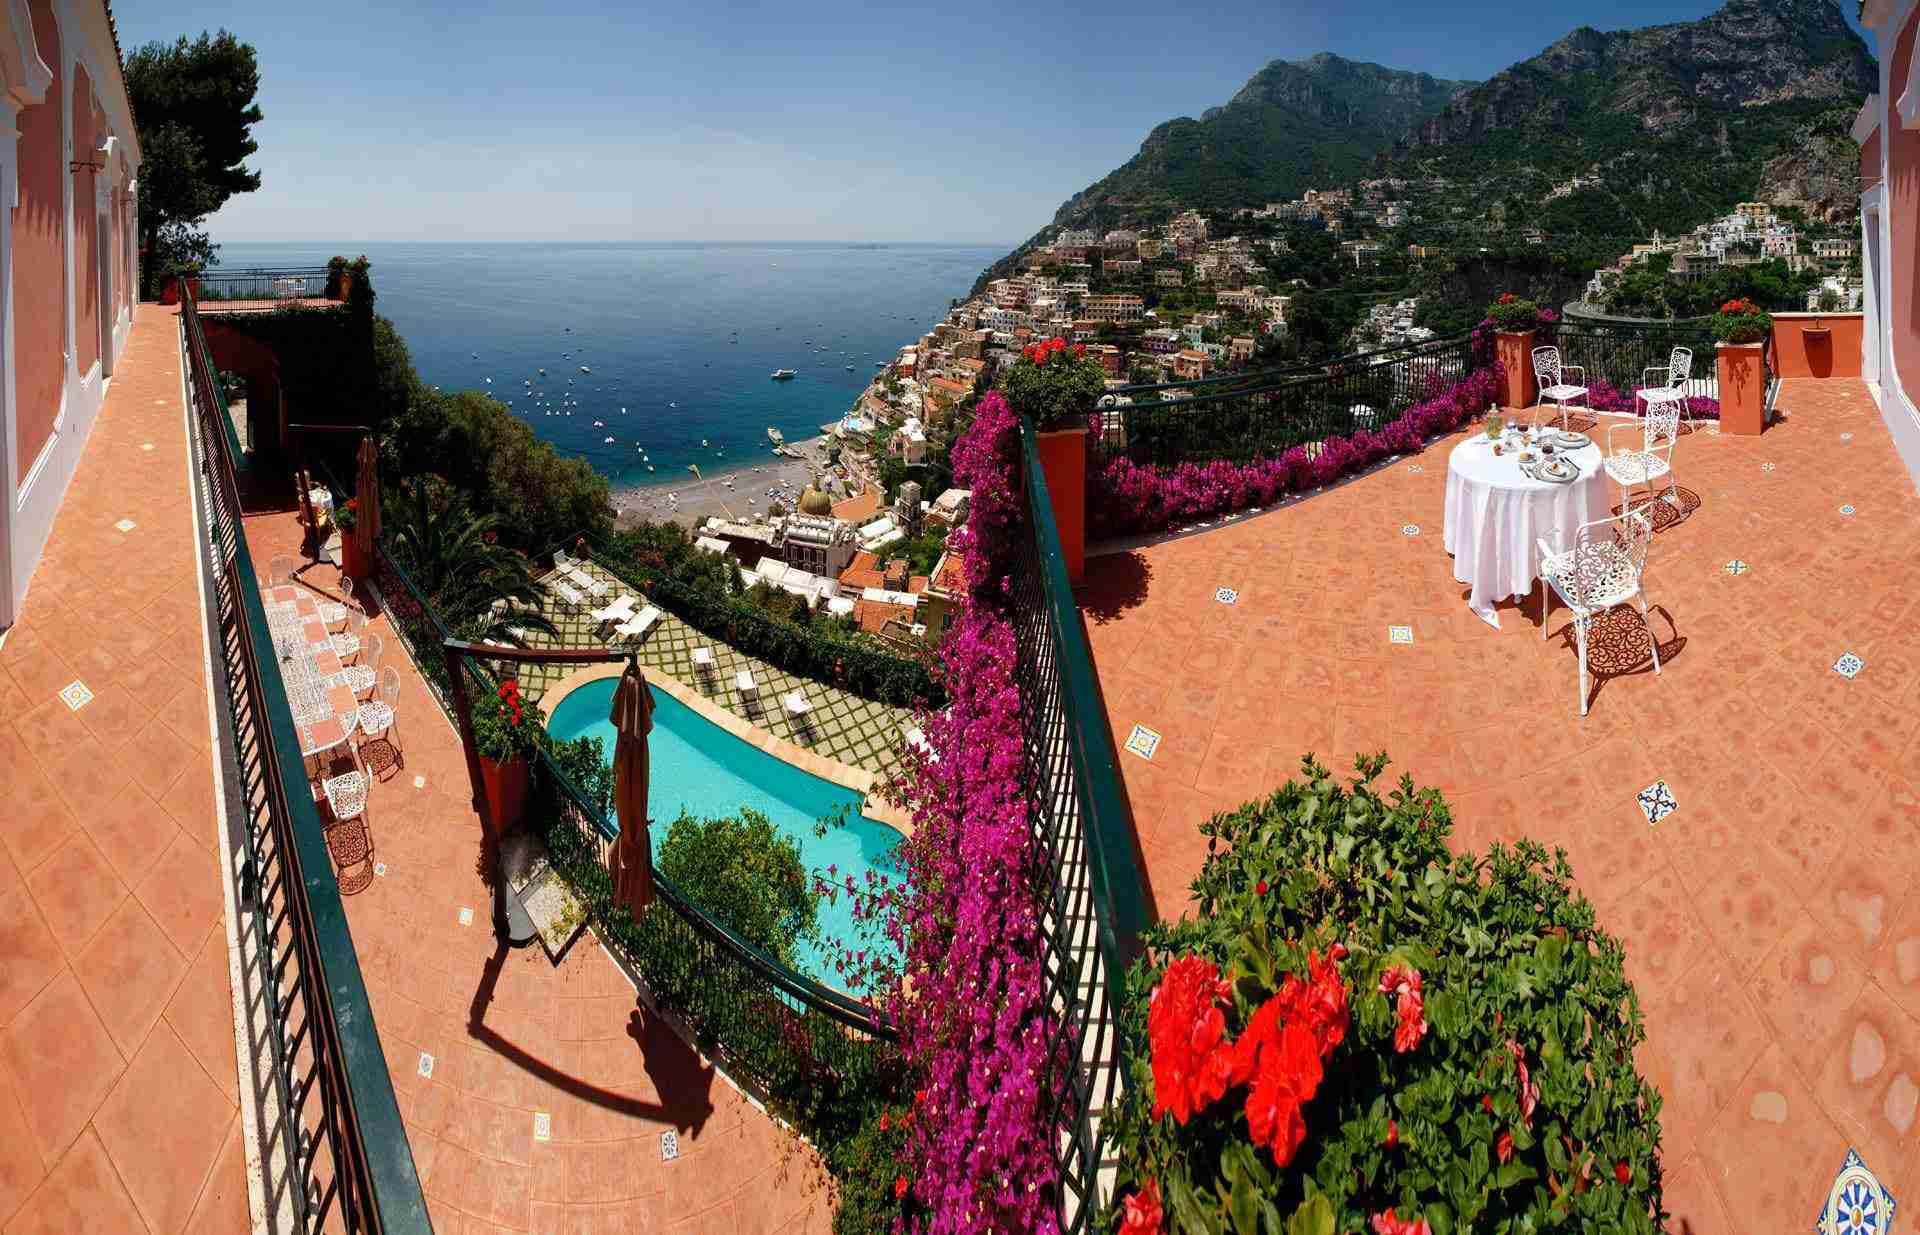 6 Positano View on Amalfi coast